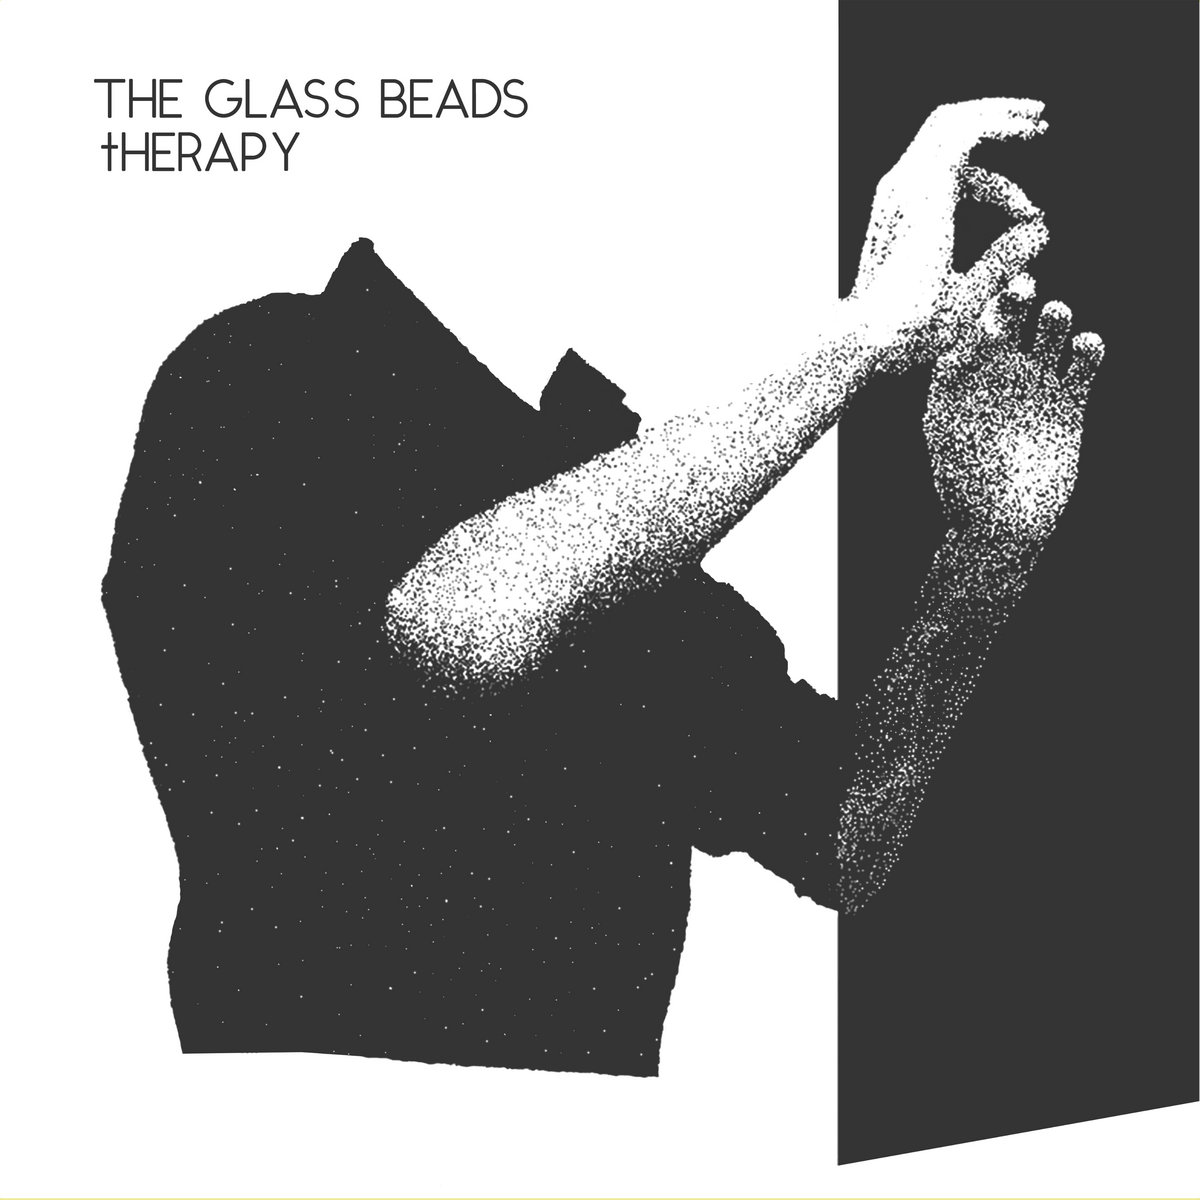 The Glass Beads cover